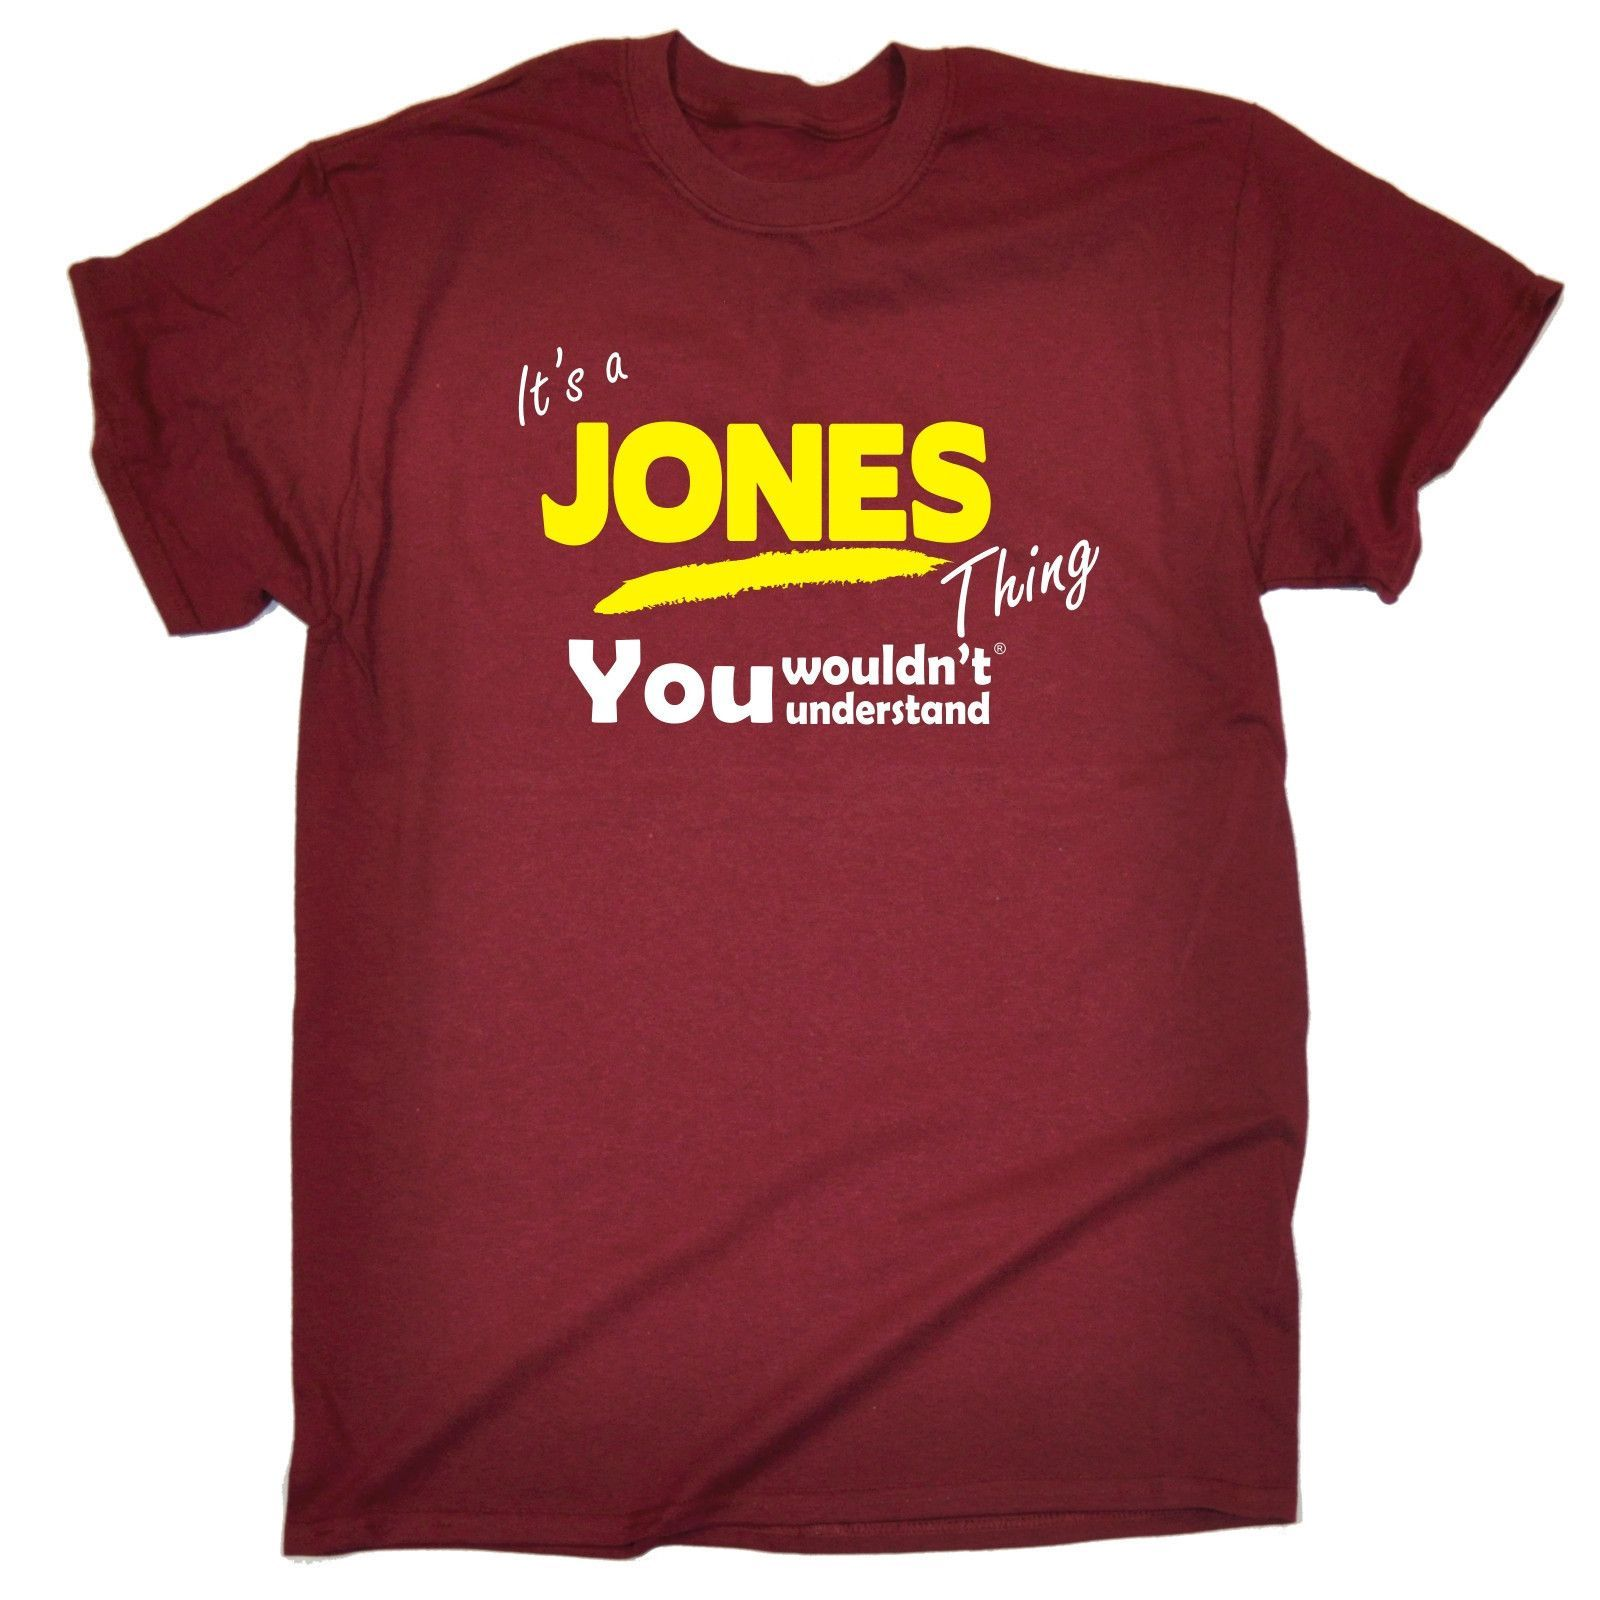 123t USA Men's It's A Jones Thing You Wouldn't Understand Funny T-Shirt